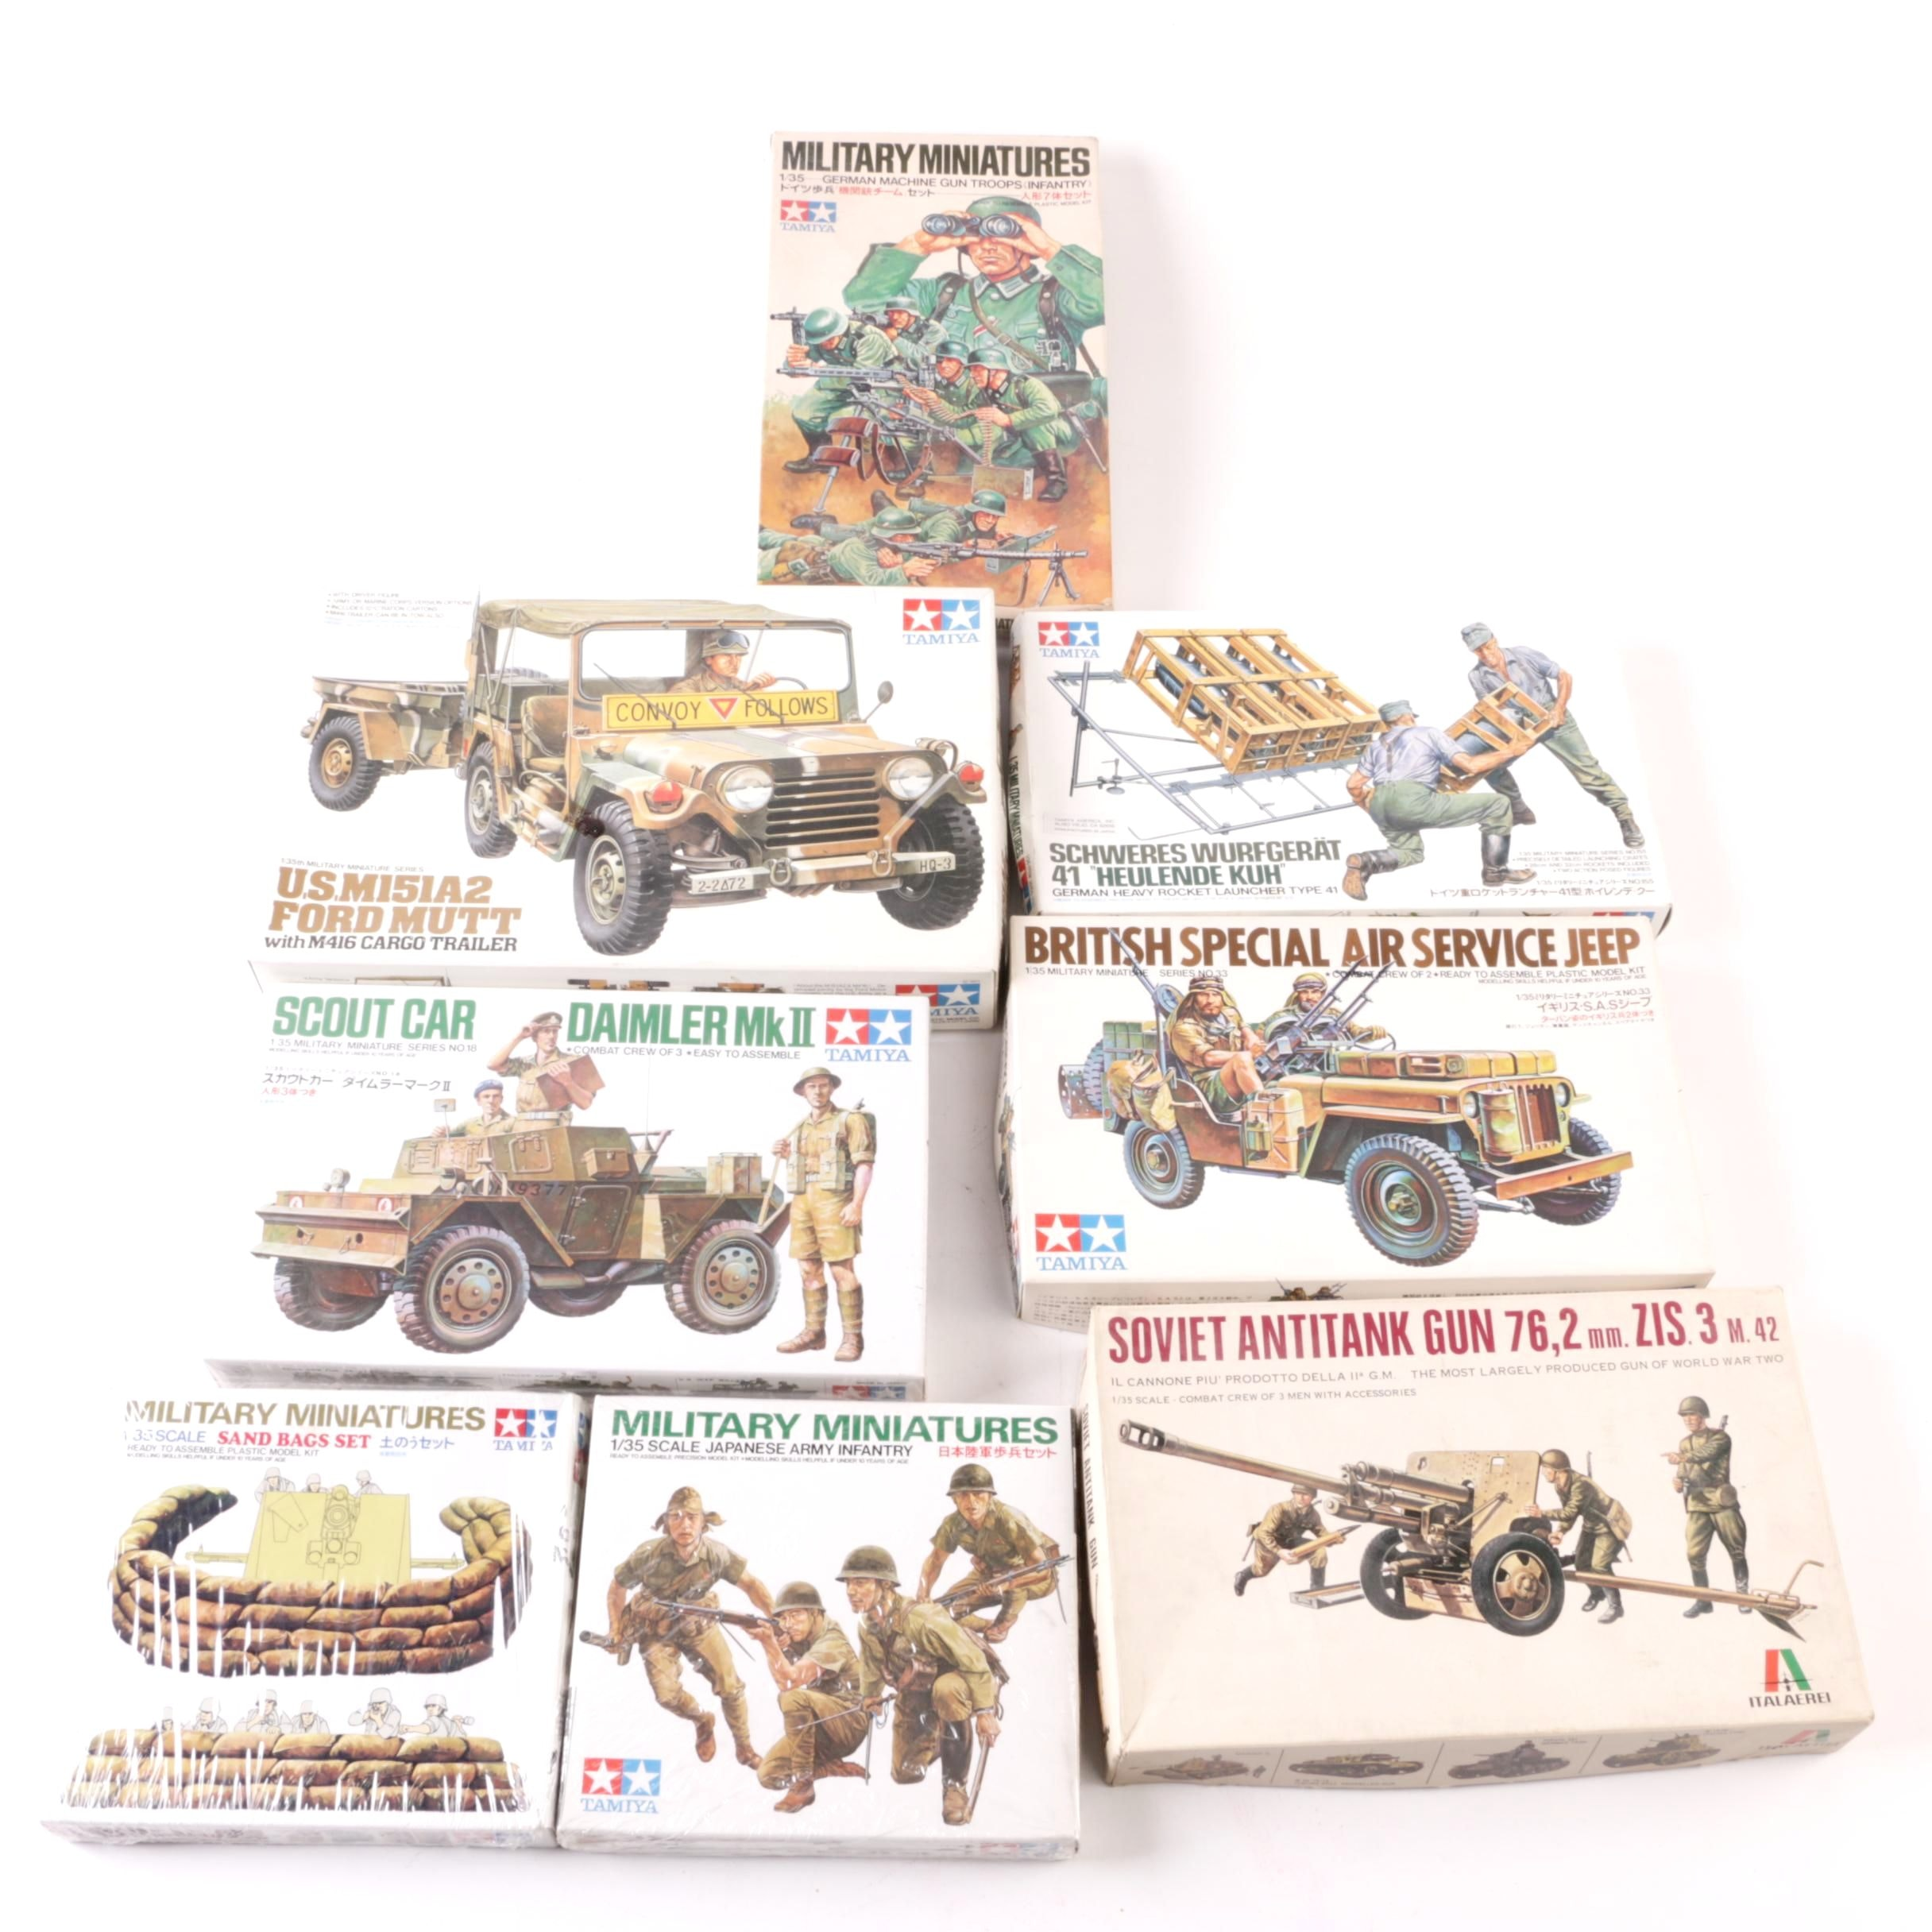 Tamiya and Italaerei Military Model Kits and Miniatures